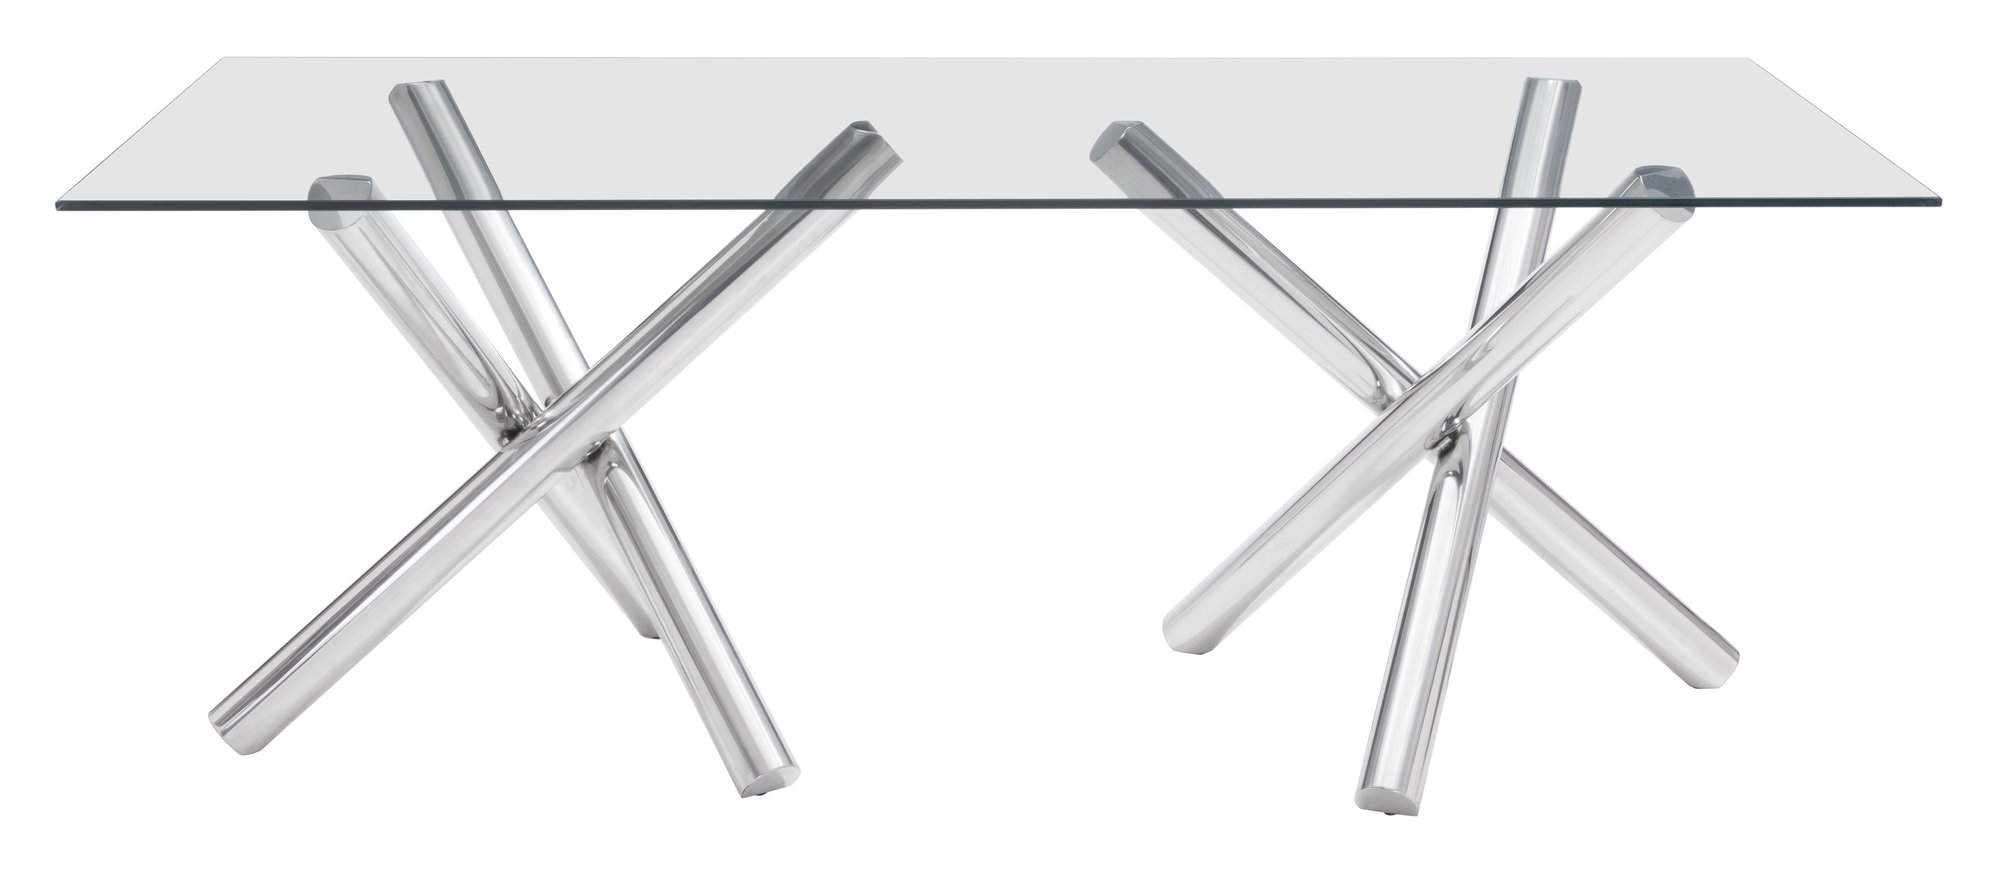 Top 6 Glass Office Desks to Transform Your Office Space -79 inch clear glass and stainless steel modern desk